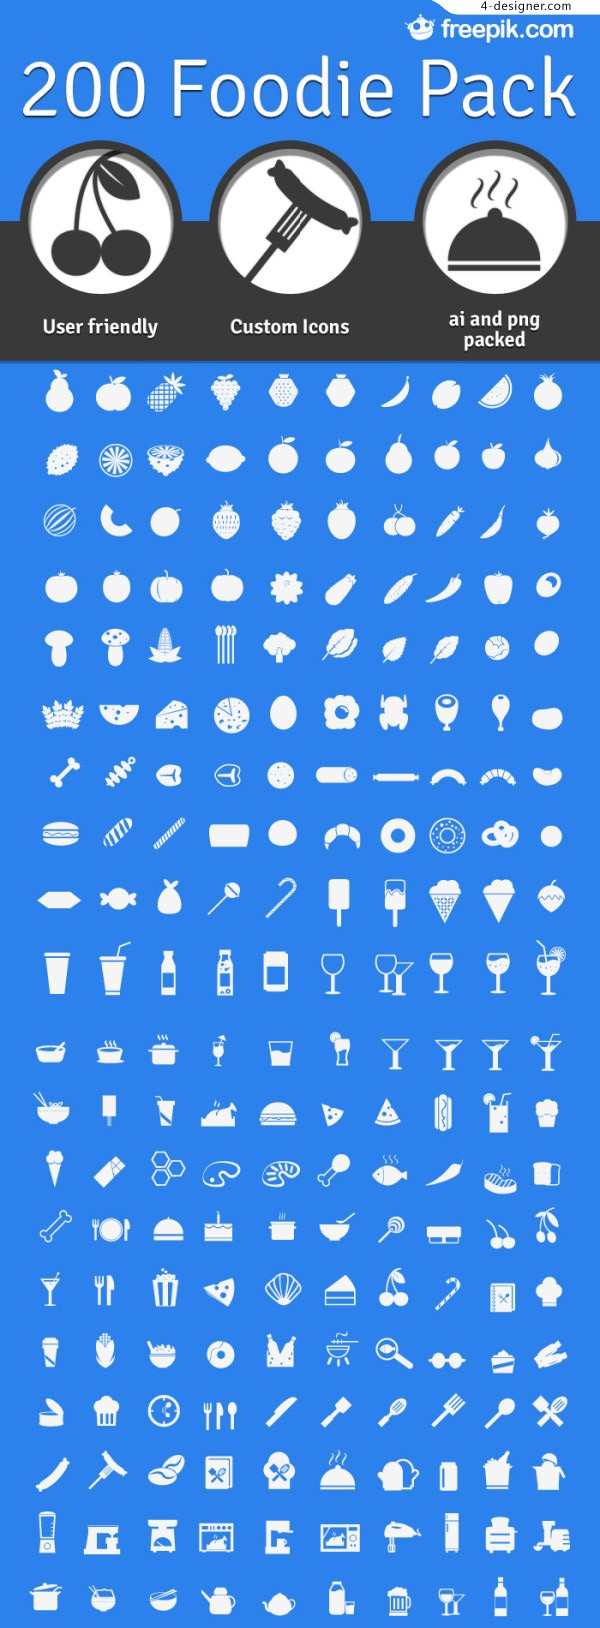 Food Icon vector material